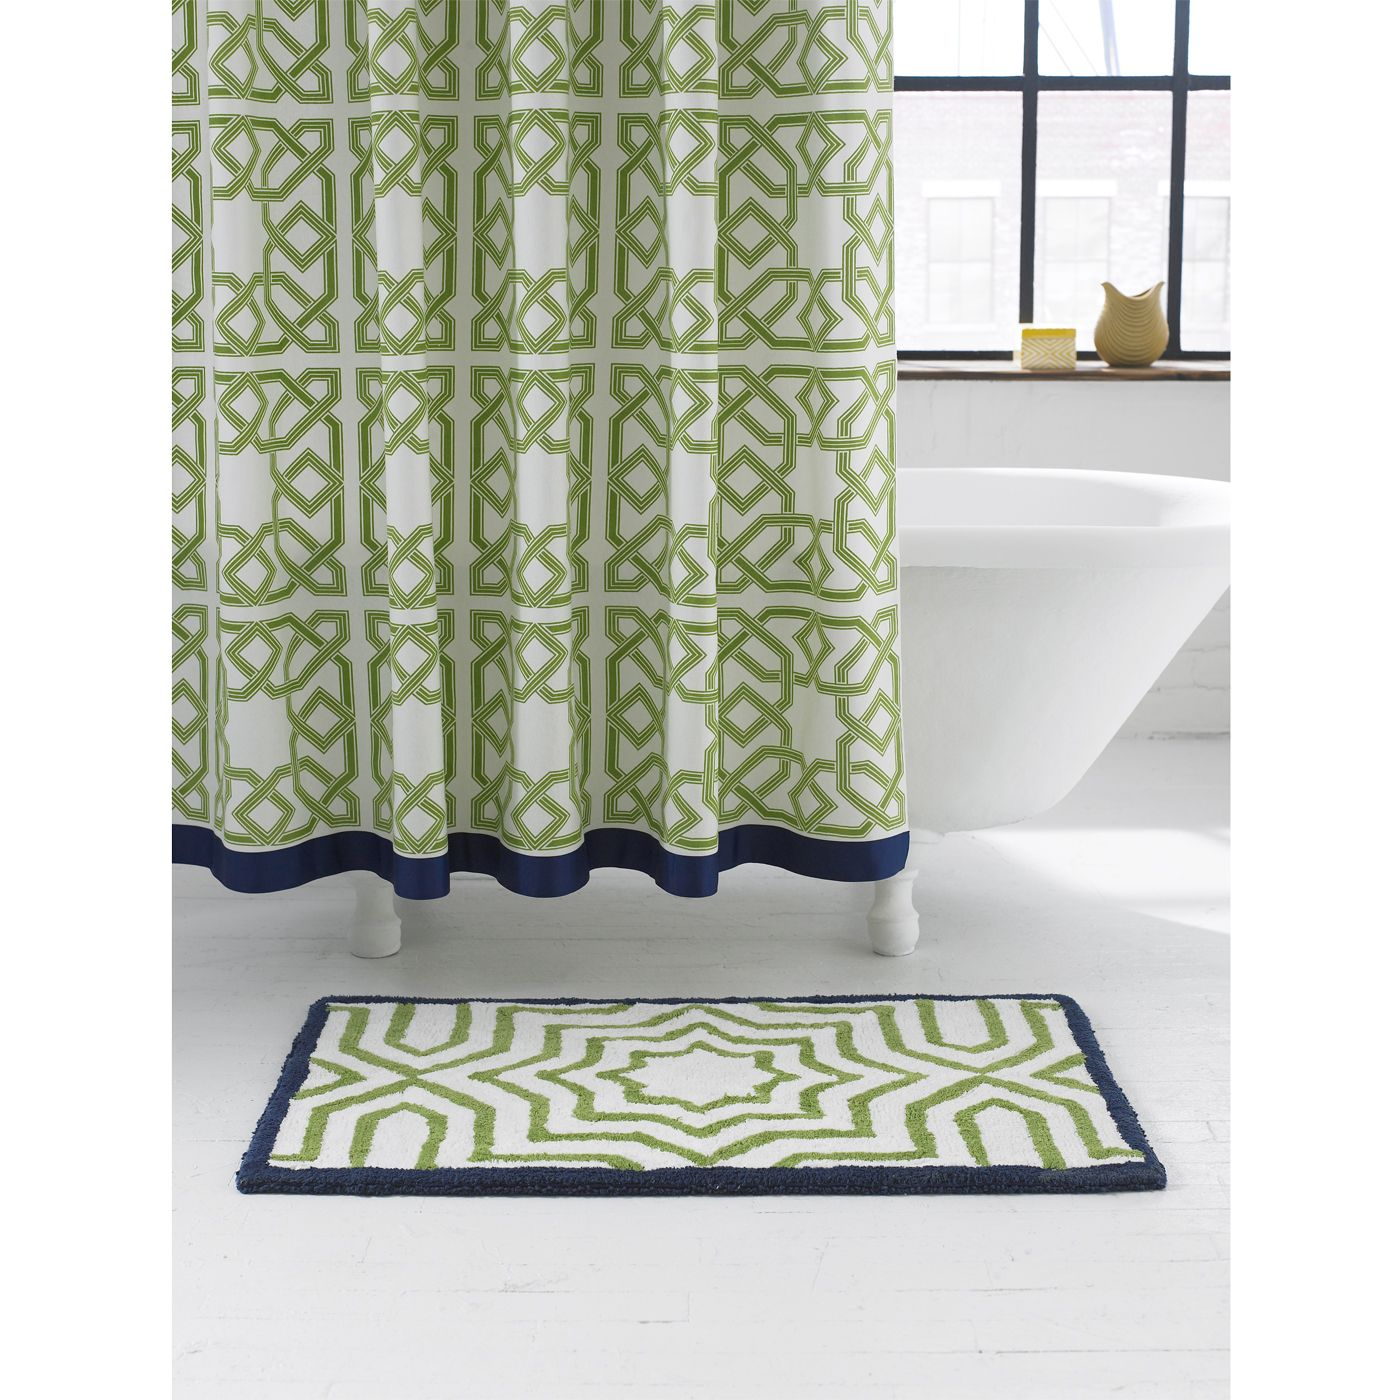 Bathroom Beauty In Its Boldest Form Shower Curtain Designer